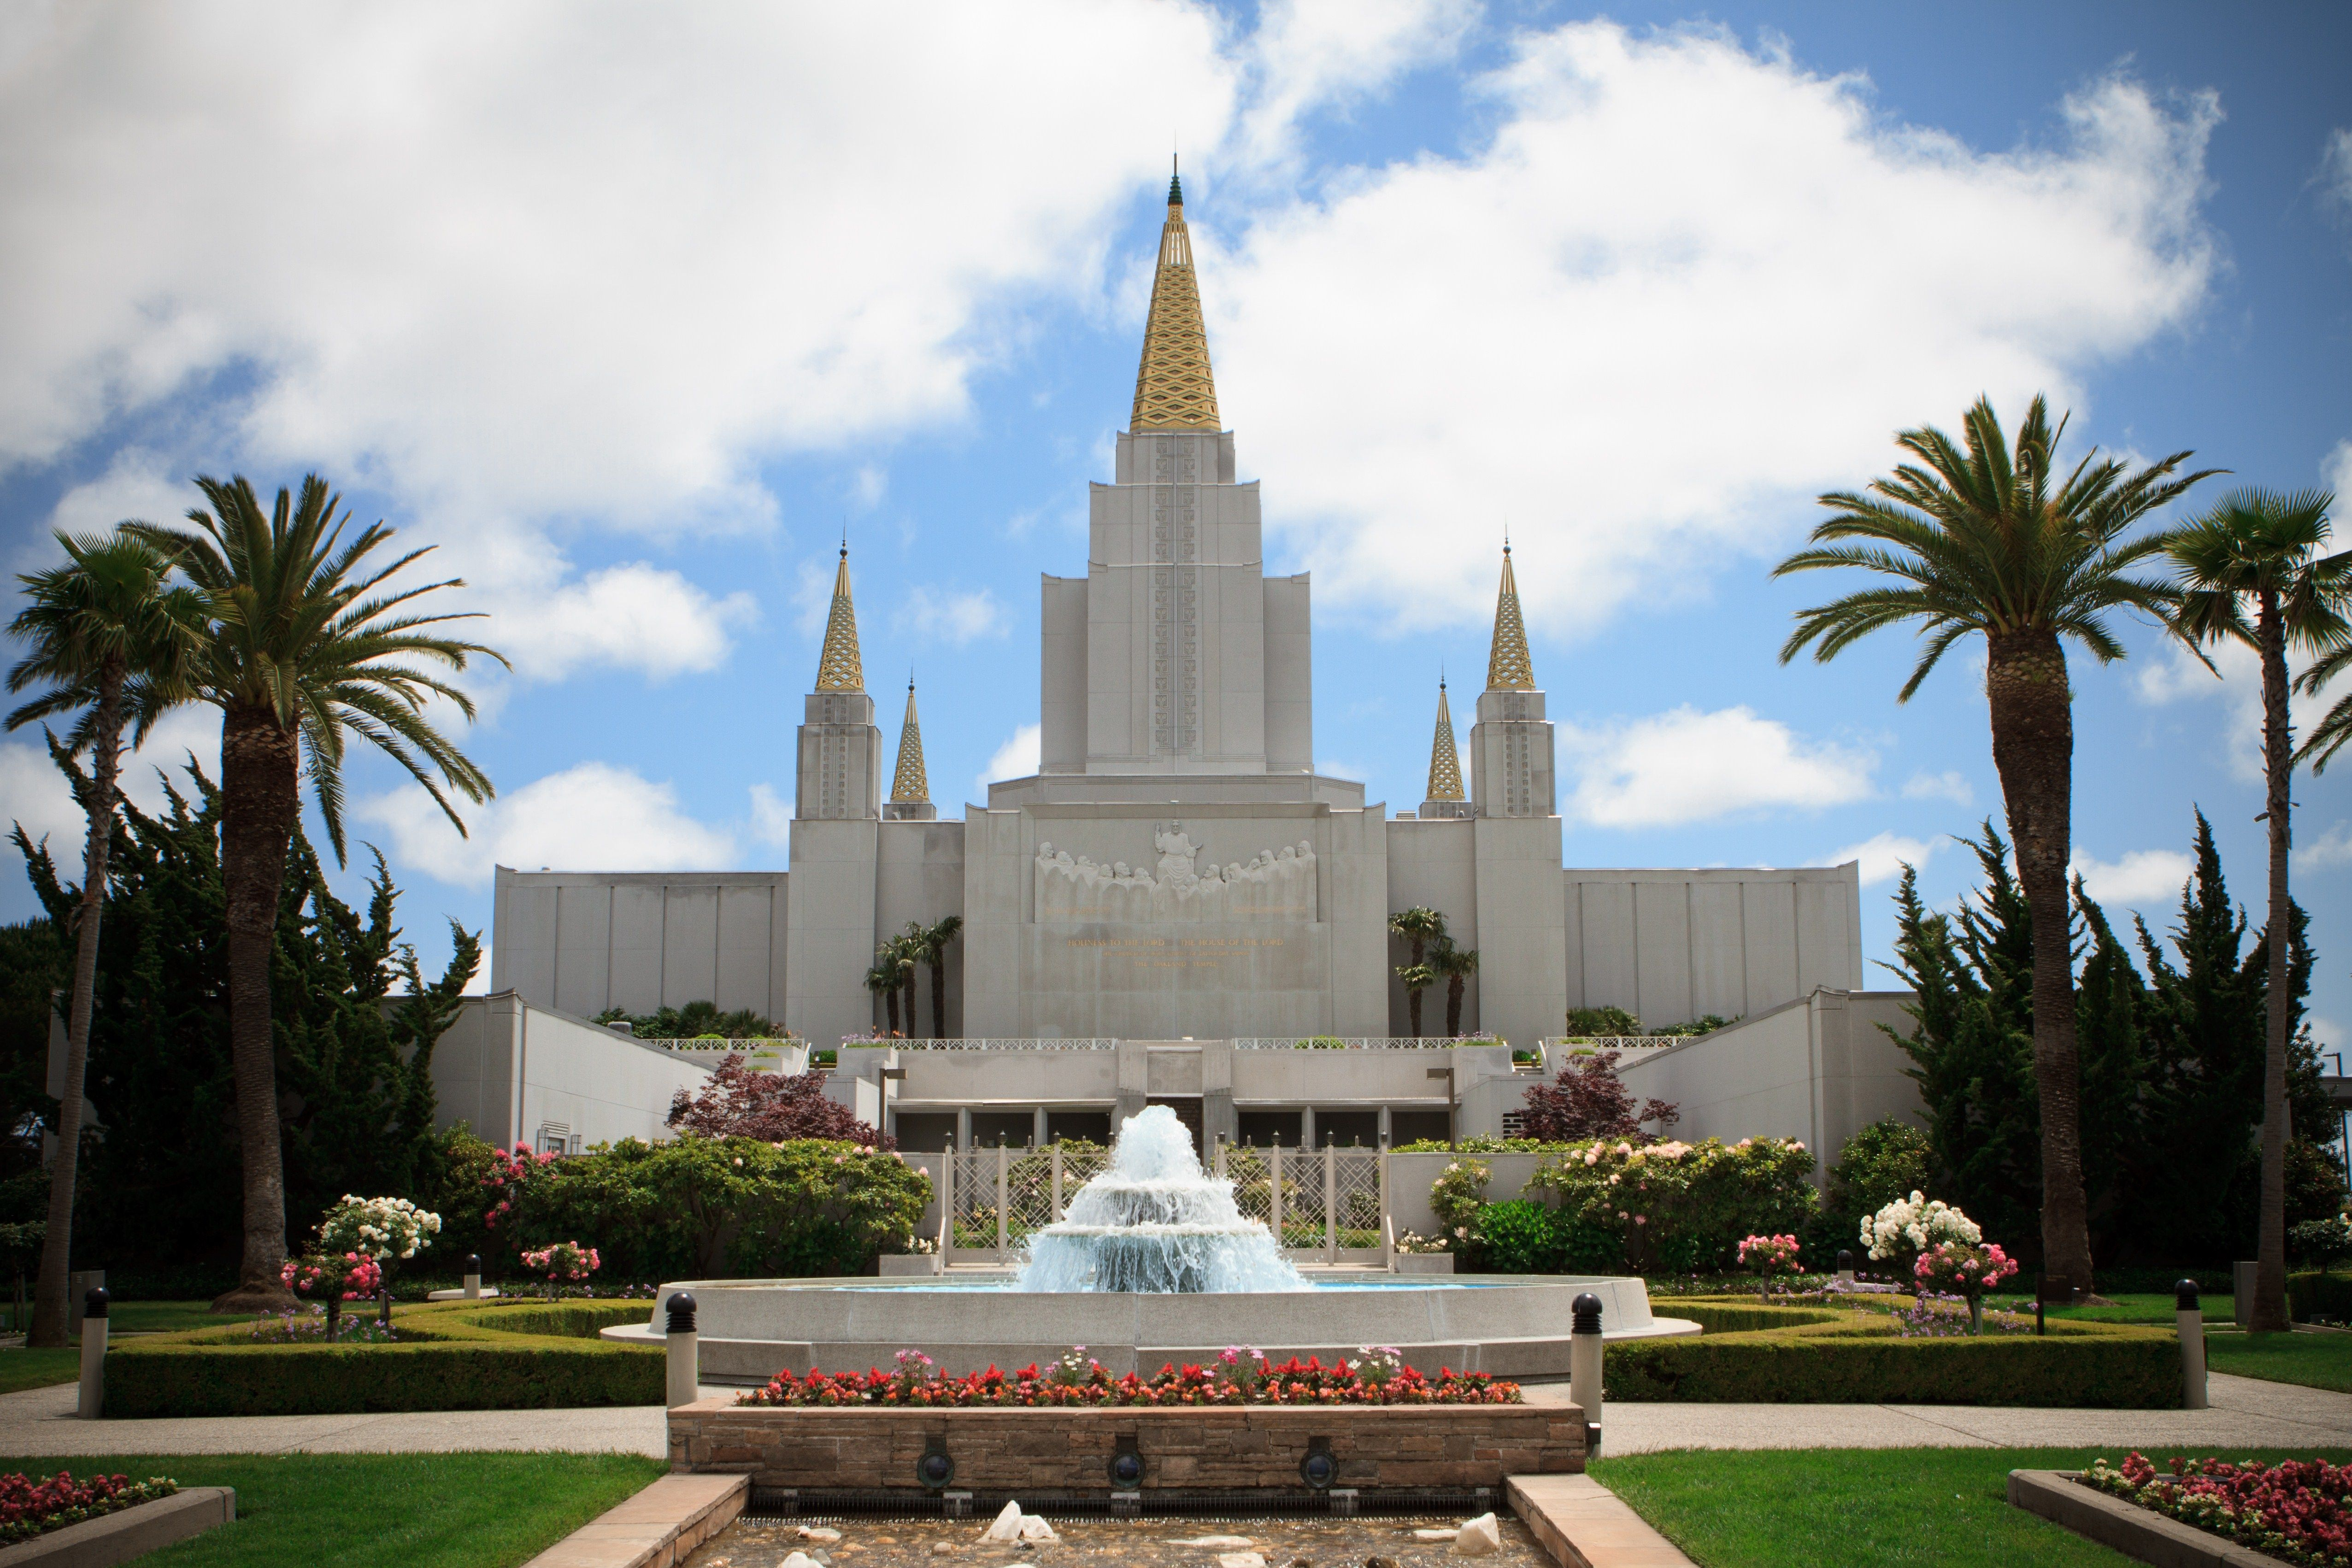 The entire Oakland California Temple, including the fountain, entrance, and scenery.